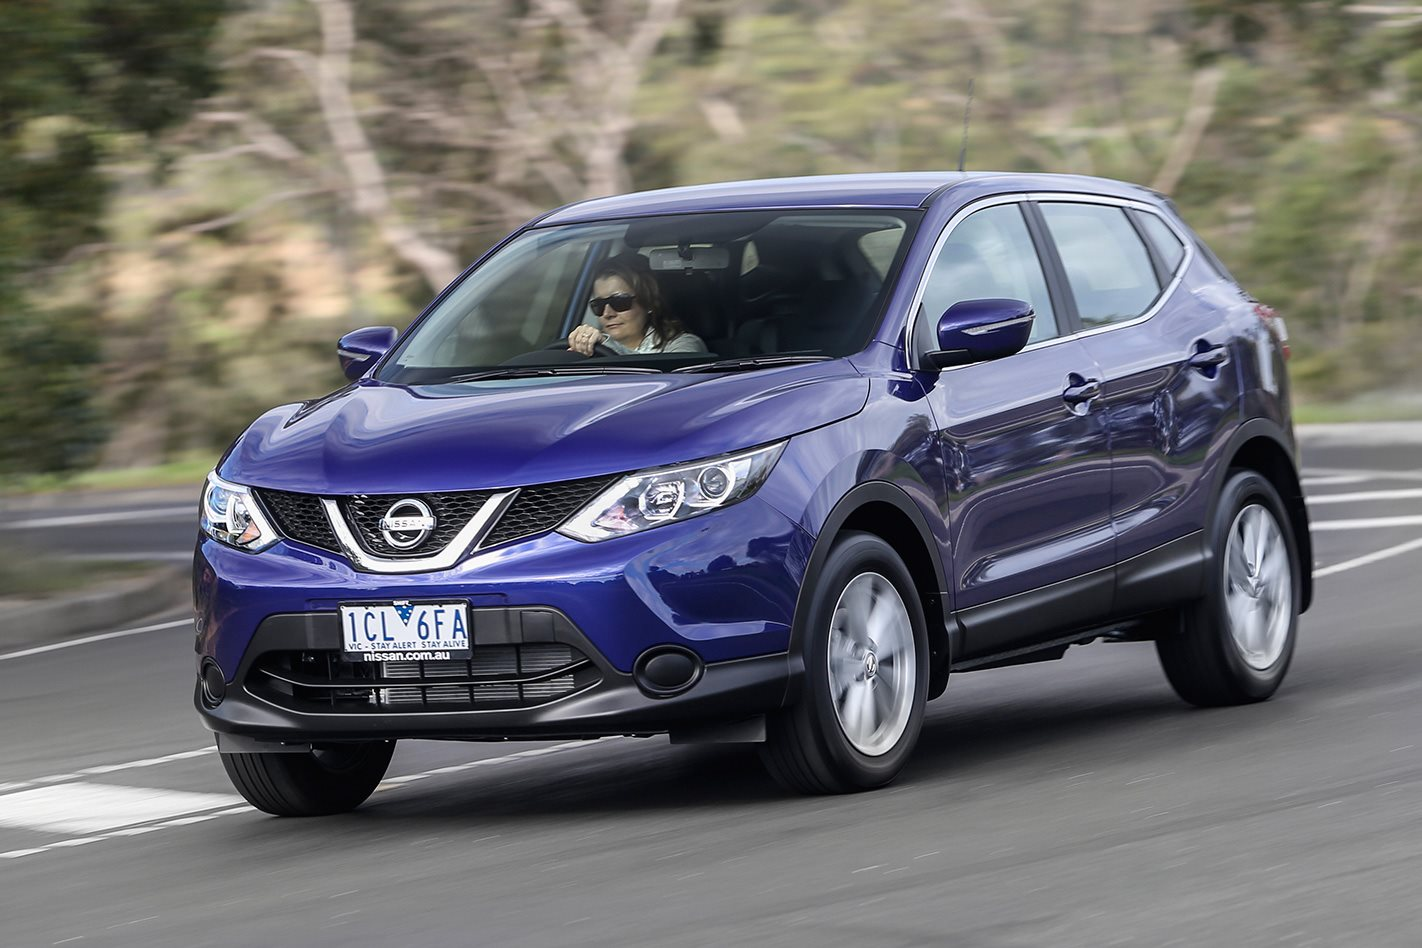 My Kia Performance >> Nissan Qashqai ST: 9 things you need to know